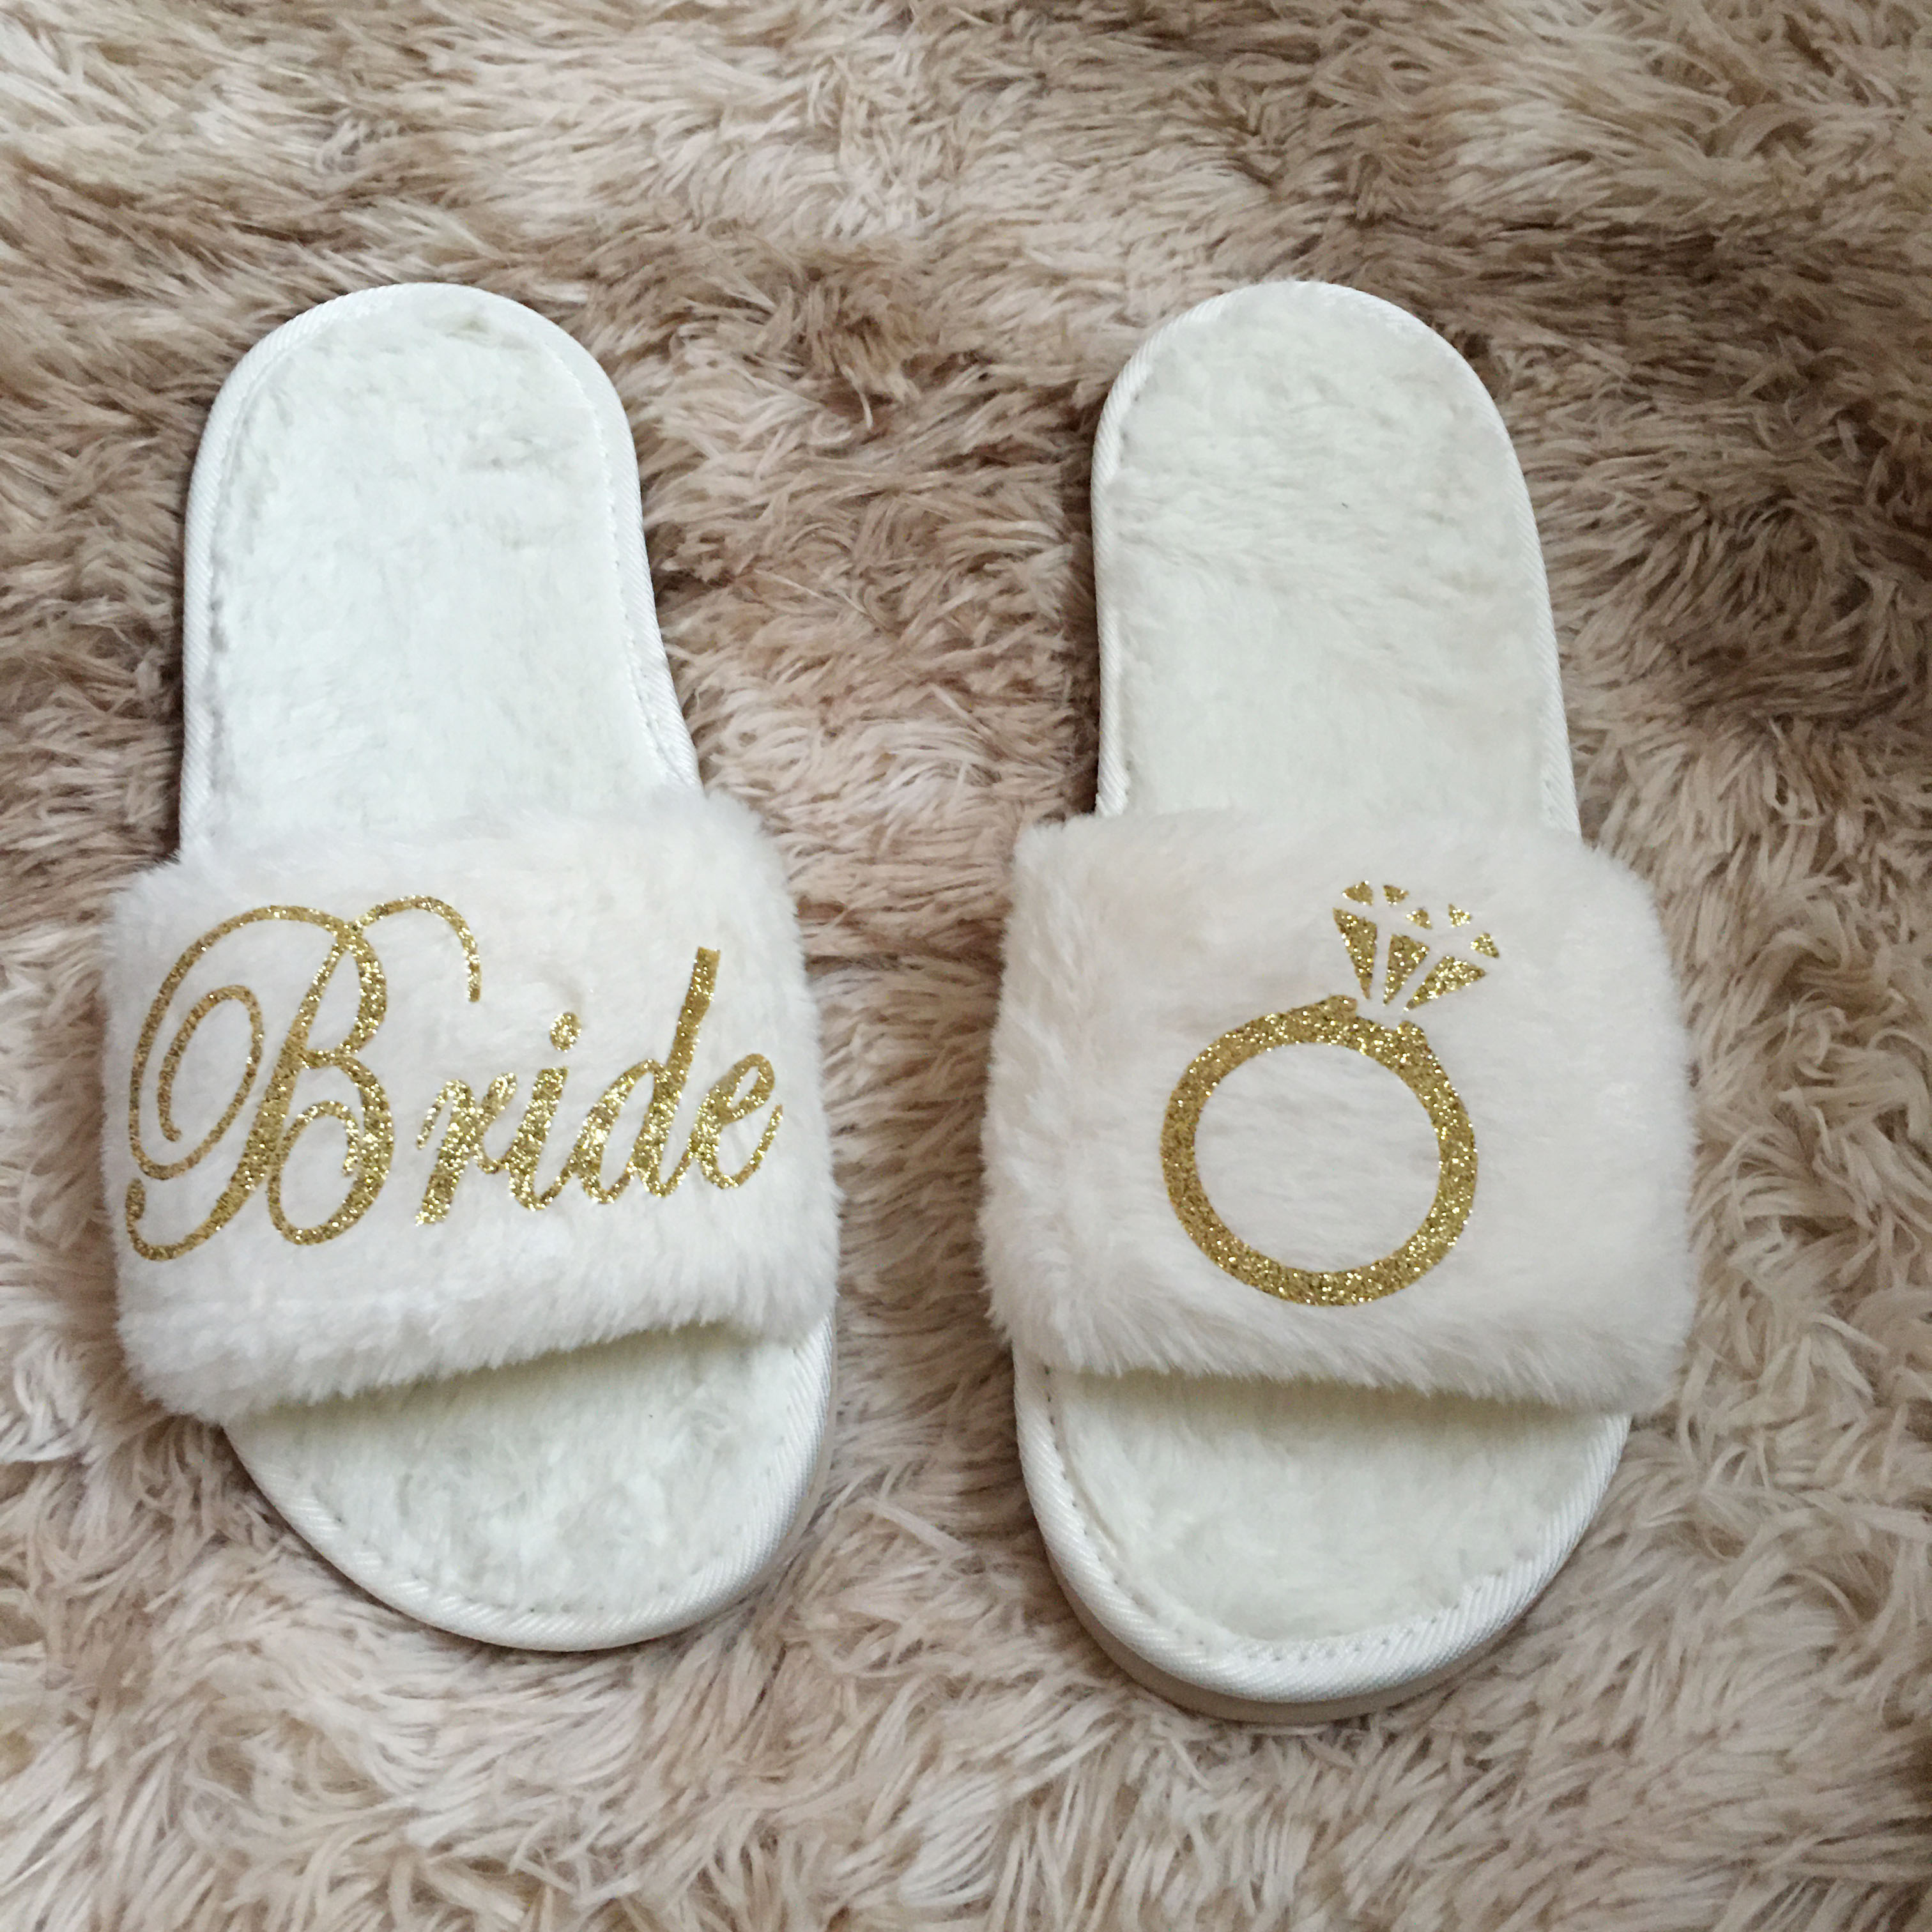 1pairs Personalized Gifts For Wedding Bride To Be Bridesmaid Slippers Birthday Anniversary Gifts